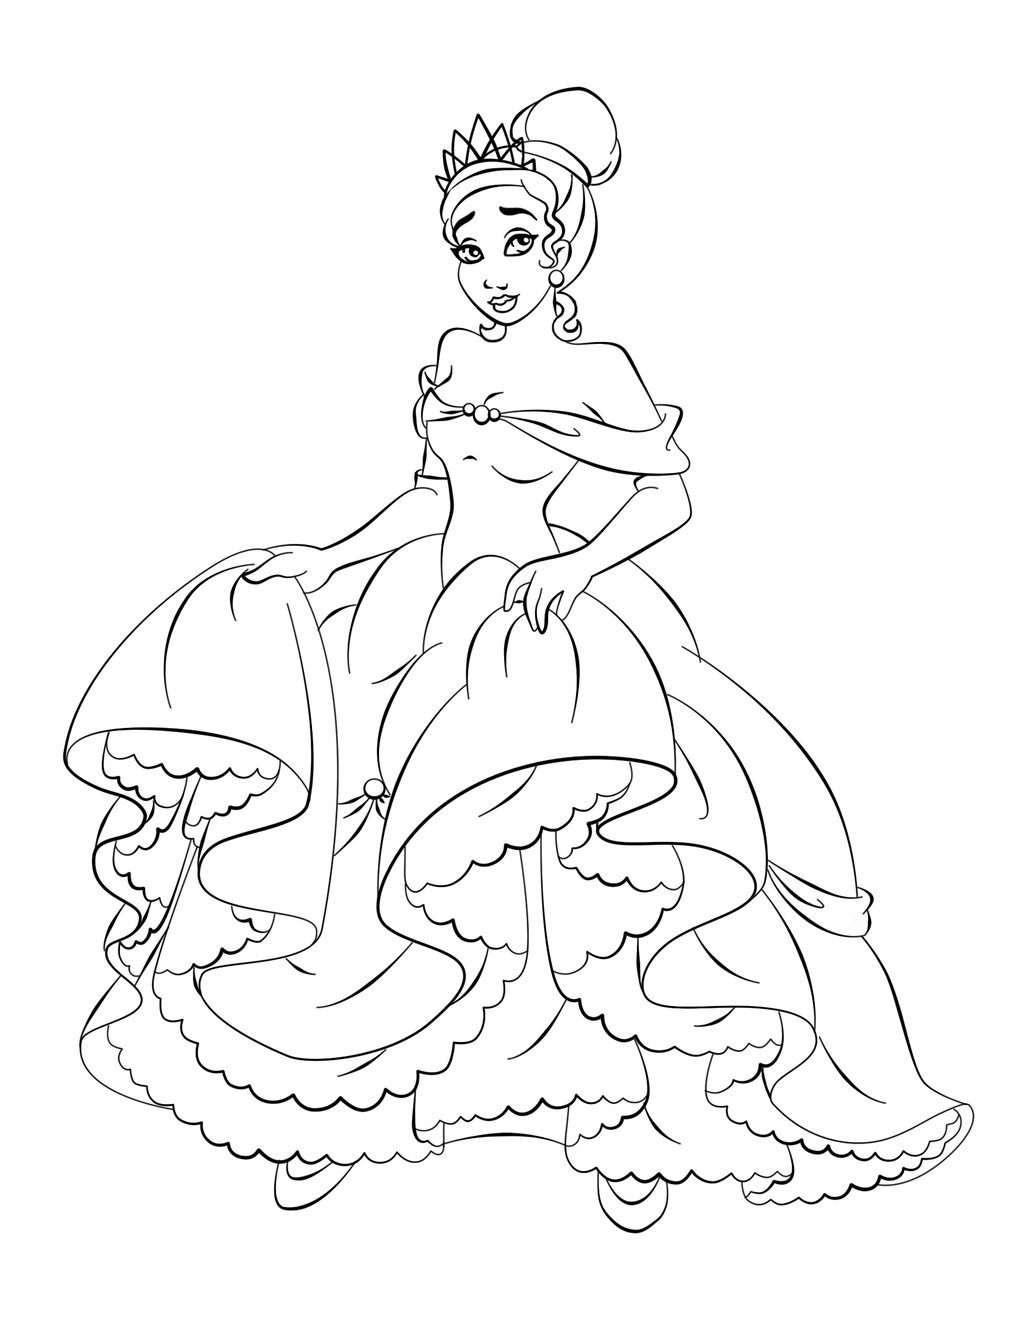 Top 30 Free Printable Princess And The Frog Coloring Pages Online | 1326x1024